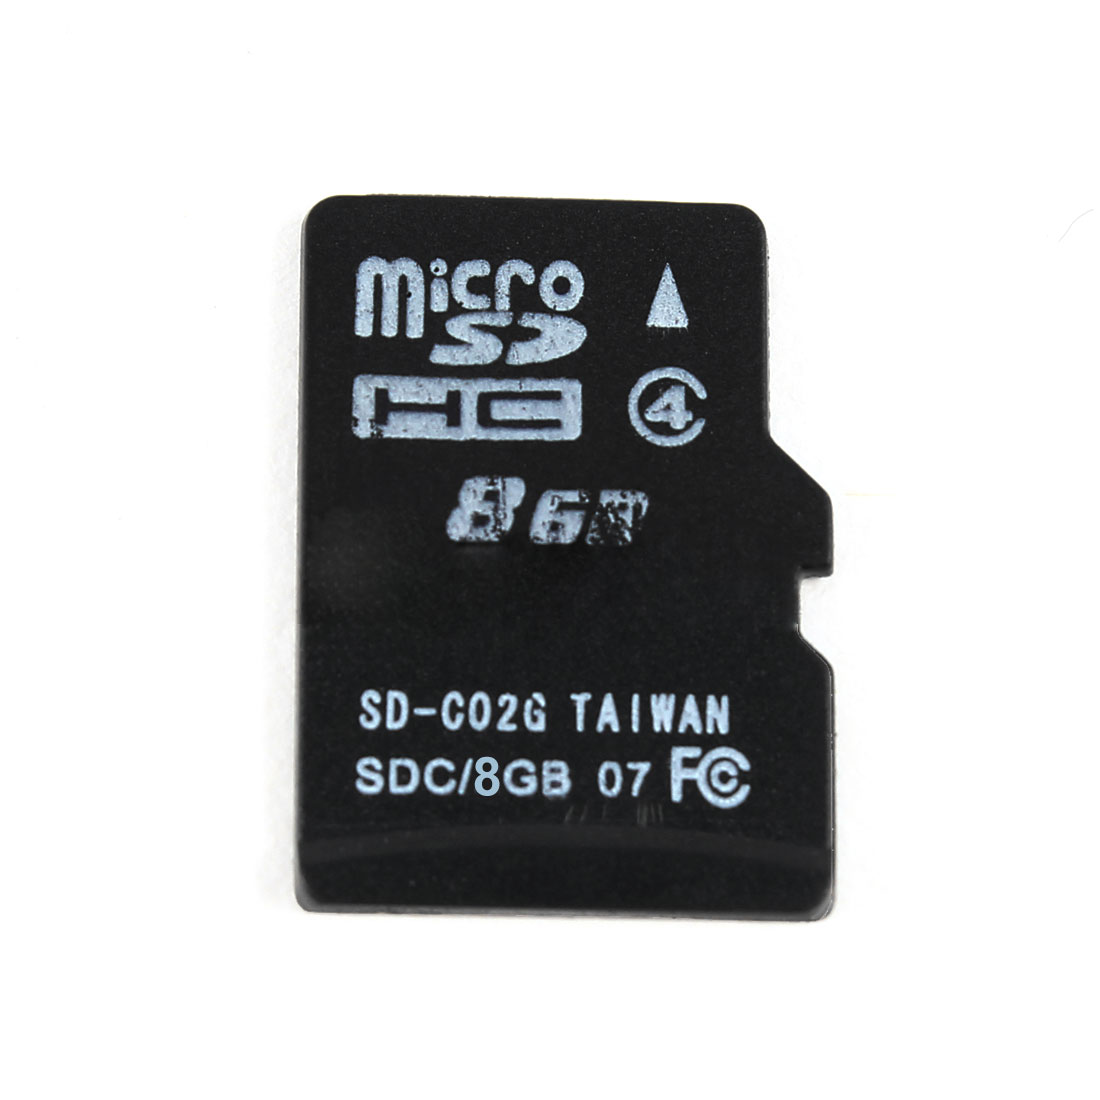 High Speed Micro SD MicroSD SDHC TF Flash Memory Card 8GB for Mobile Phone